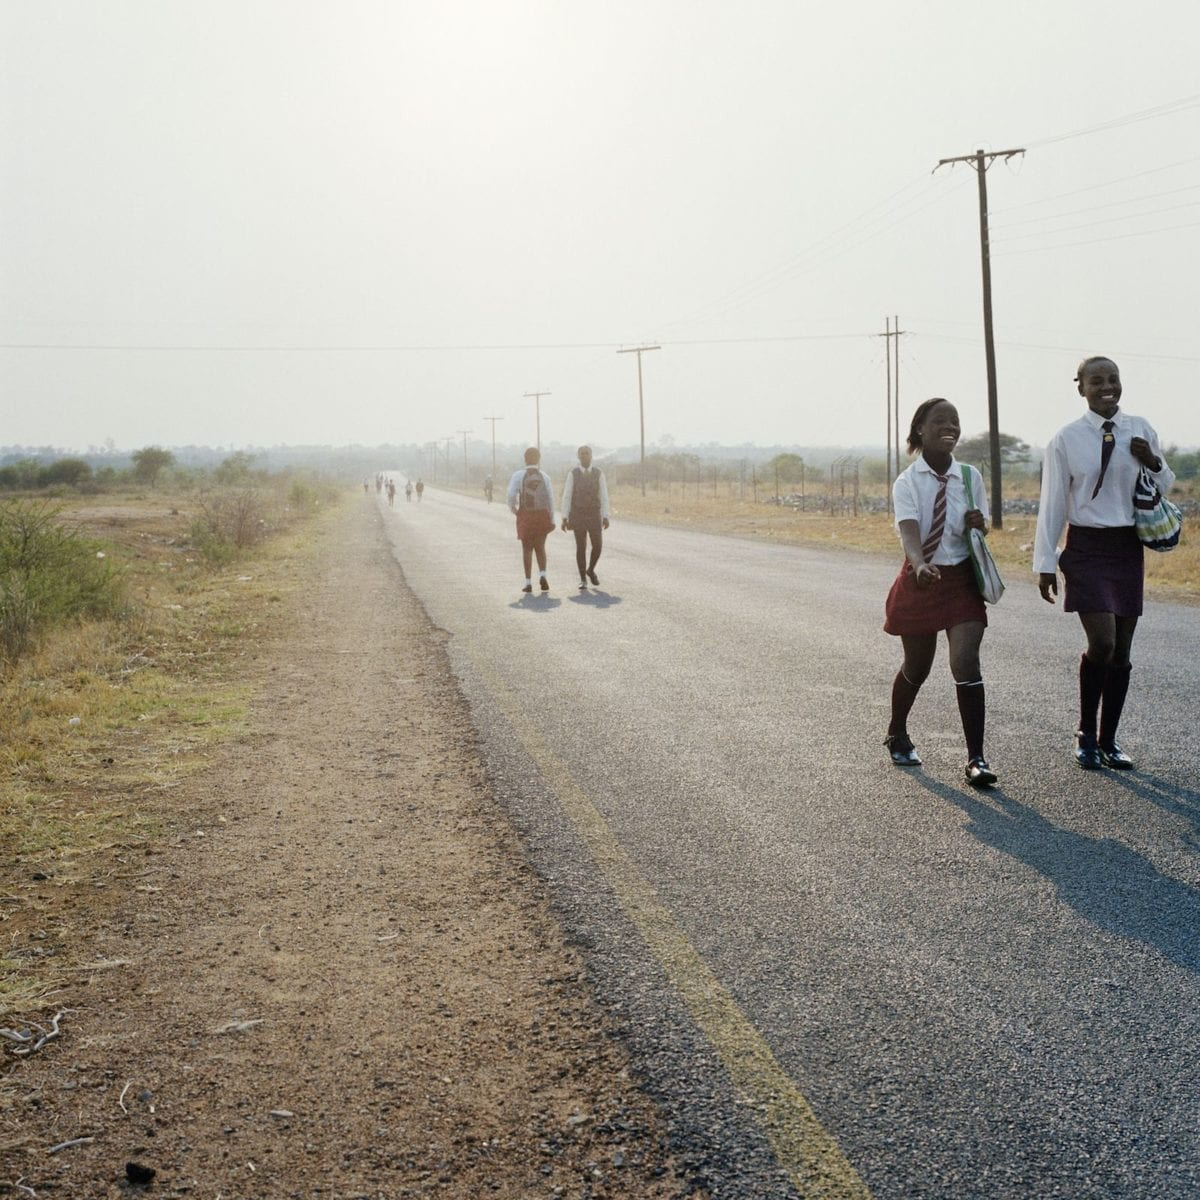 Homeland, Road Divide Guateng and Northwest Province, Hamaskraal, Former Bophuthatswana, 2011